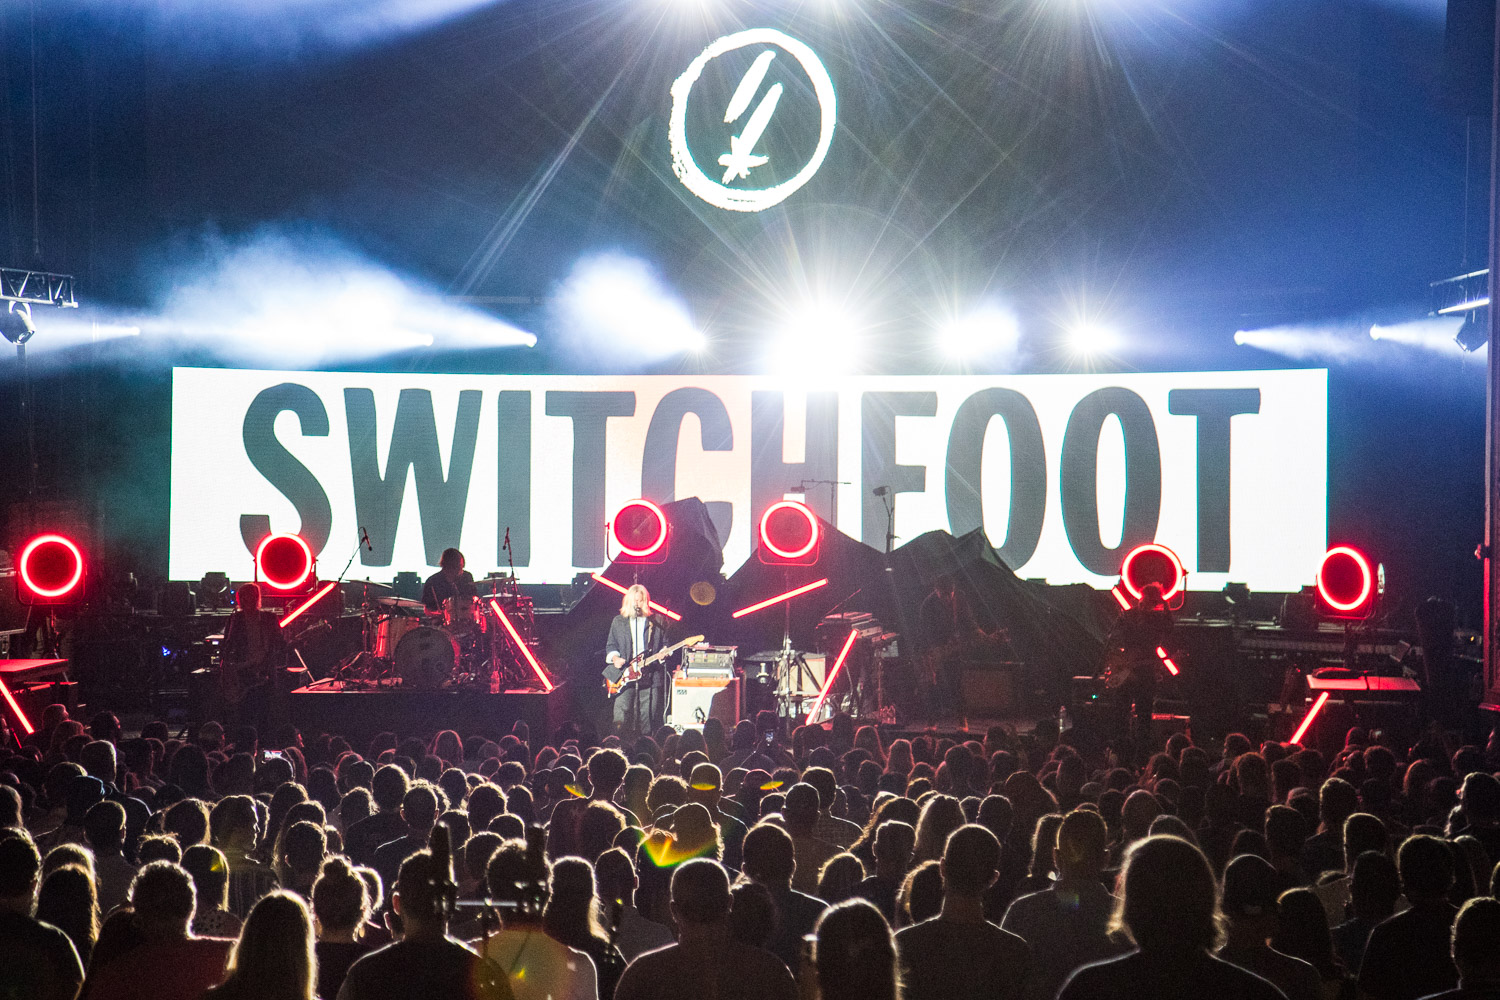 Switchfoot performing at the Arvest Bank Theatre at The Midland in Kansas City, Missouri on September 8, 2021